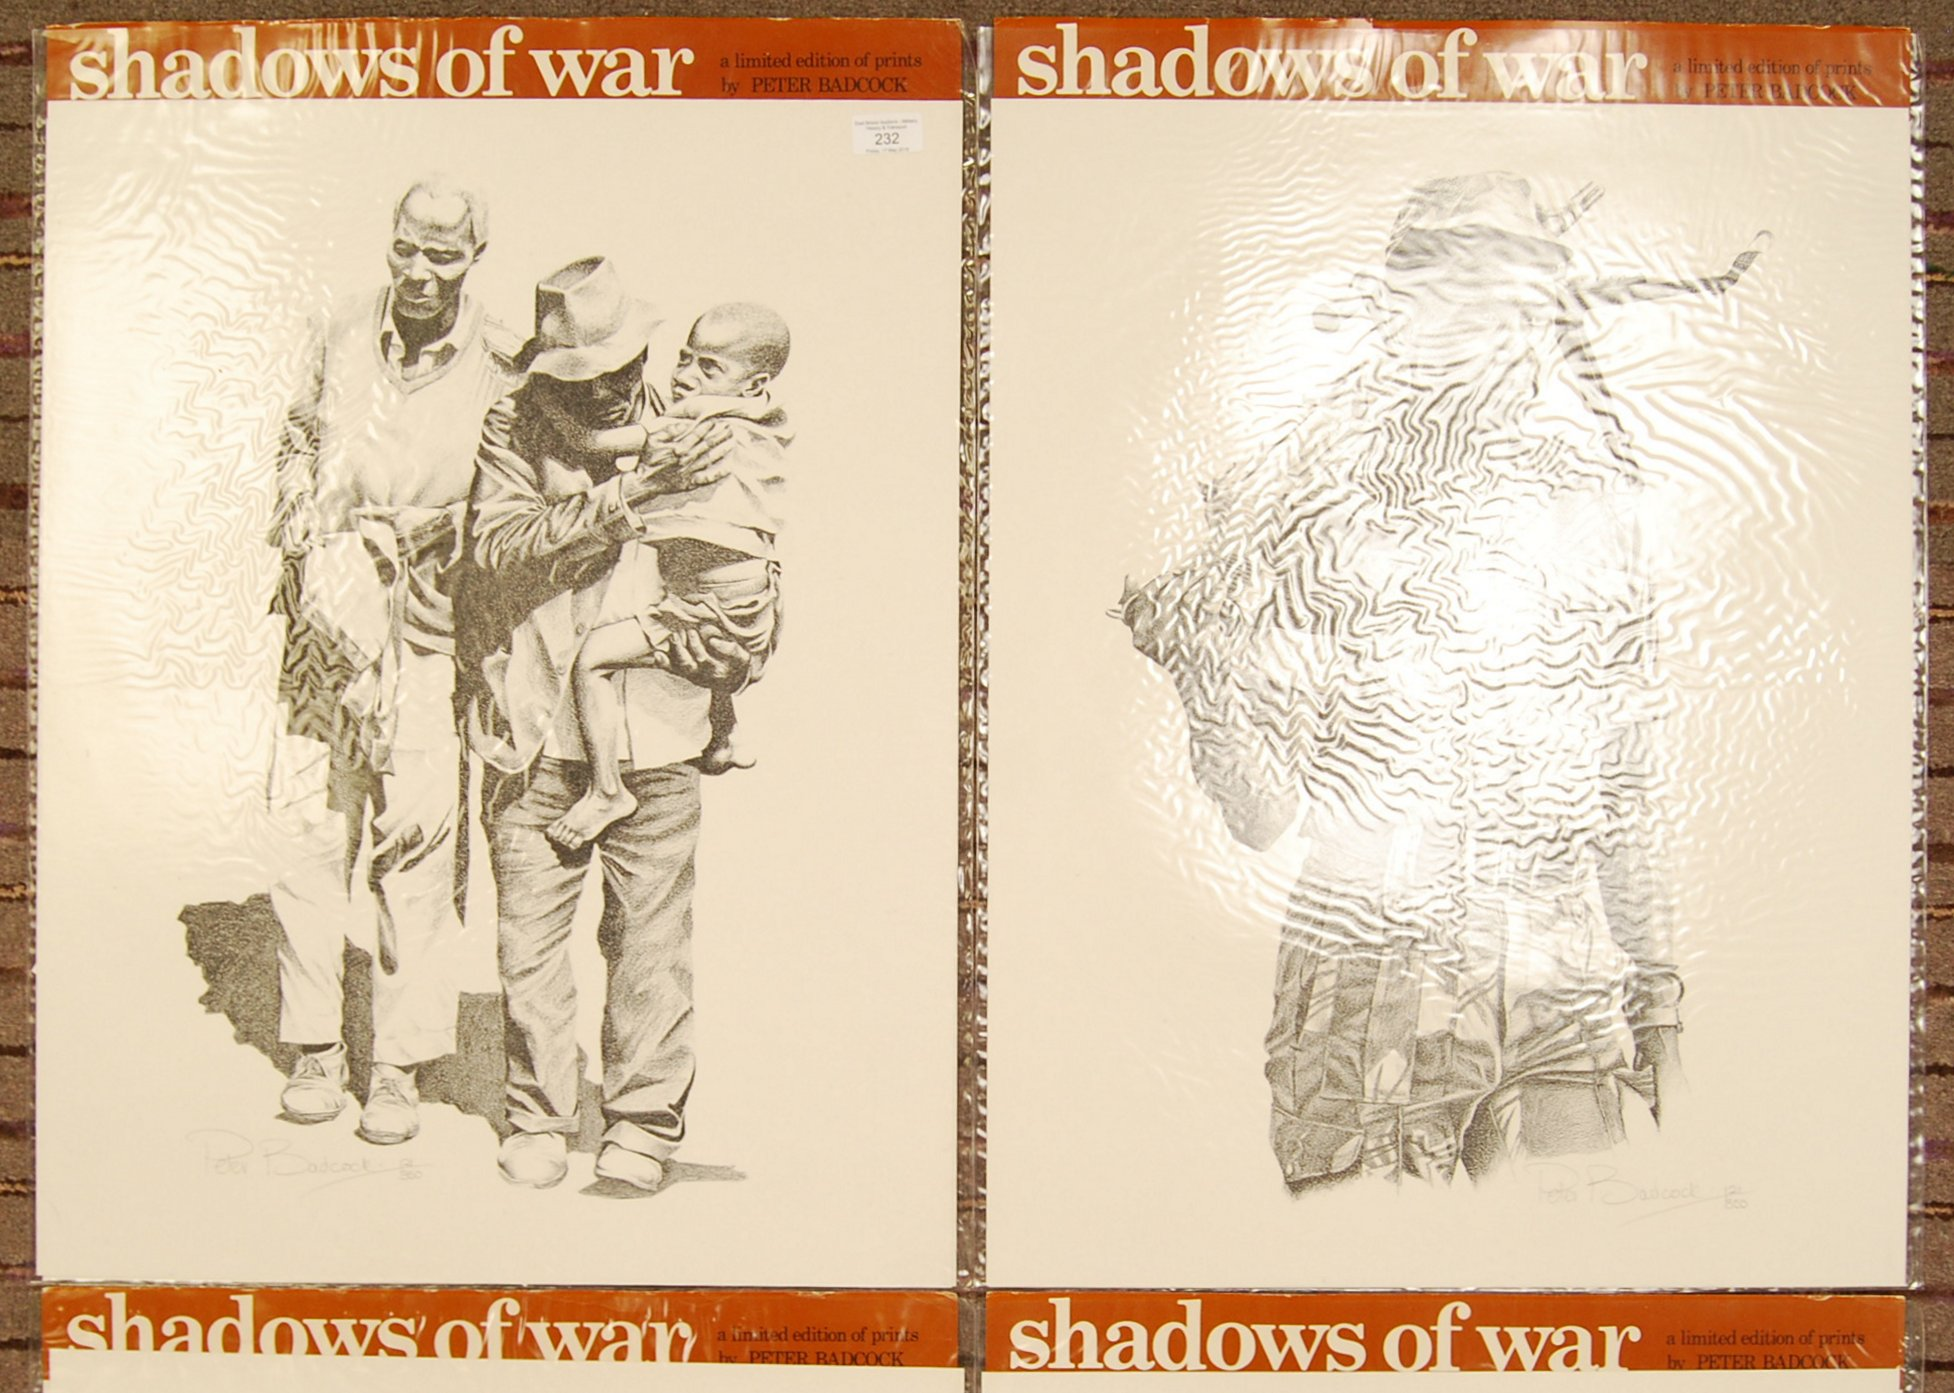 Lot 232 - RHODESIA SHADOWS OF WAR LIMITED EDITION PRINTS BY PETER BADCOCK